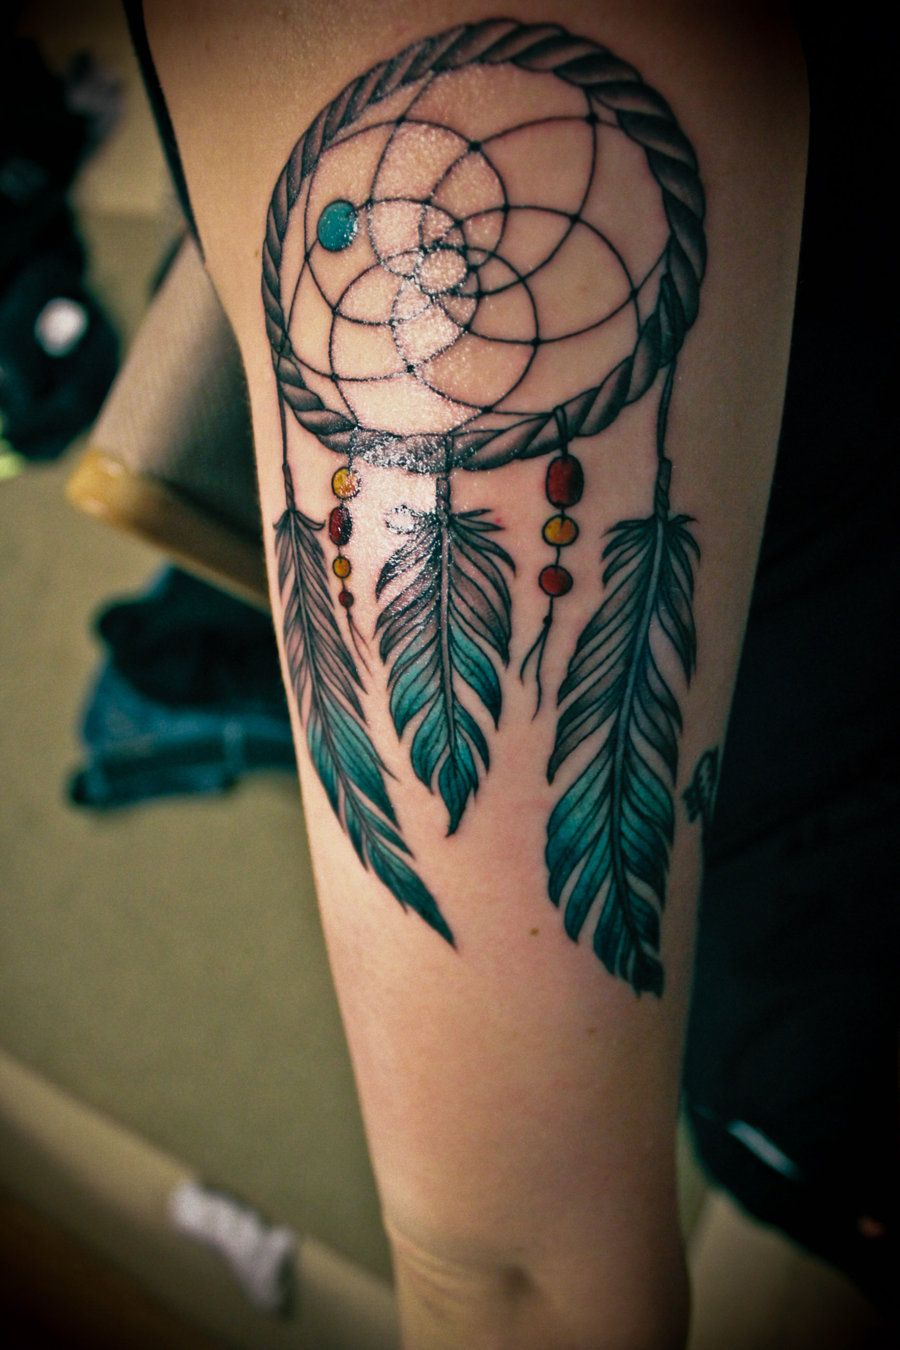 Dream Catcher Tattoo On Arm Classy 35 Awesome Dreamcatcher Tattoos And Meanings  Pinterest  Dream Review